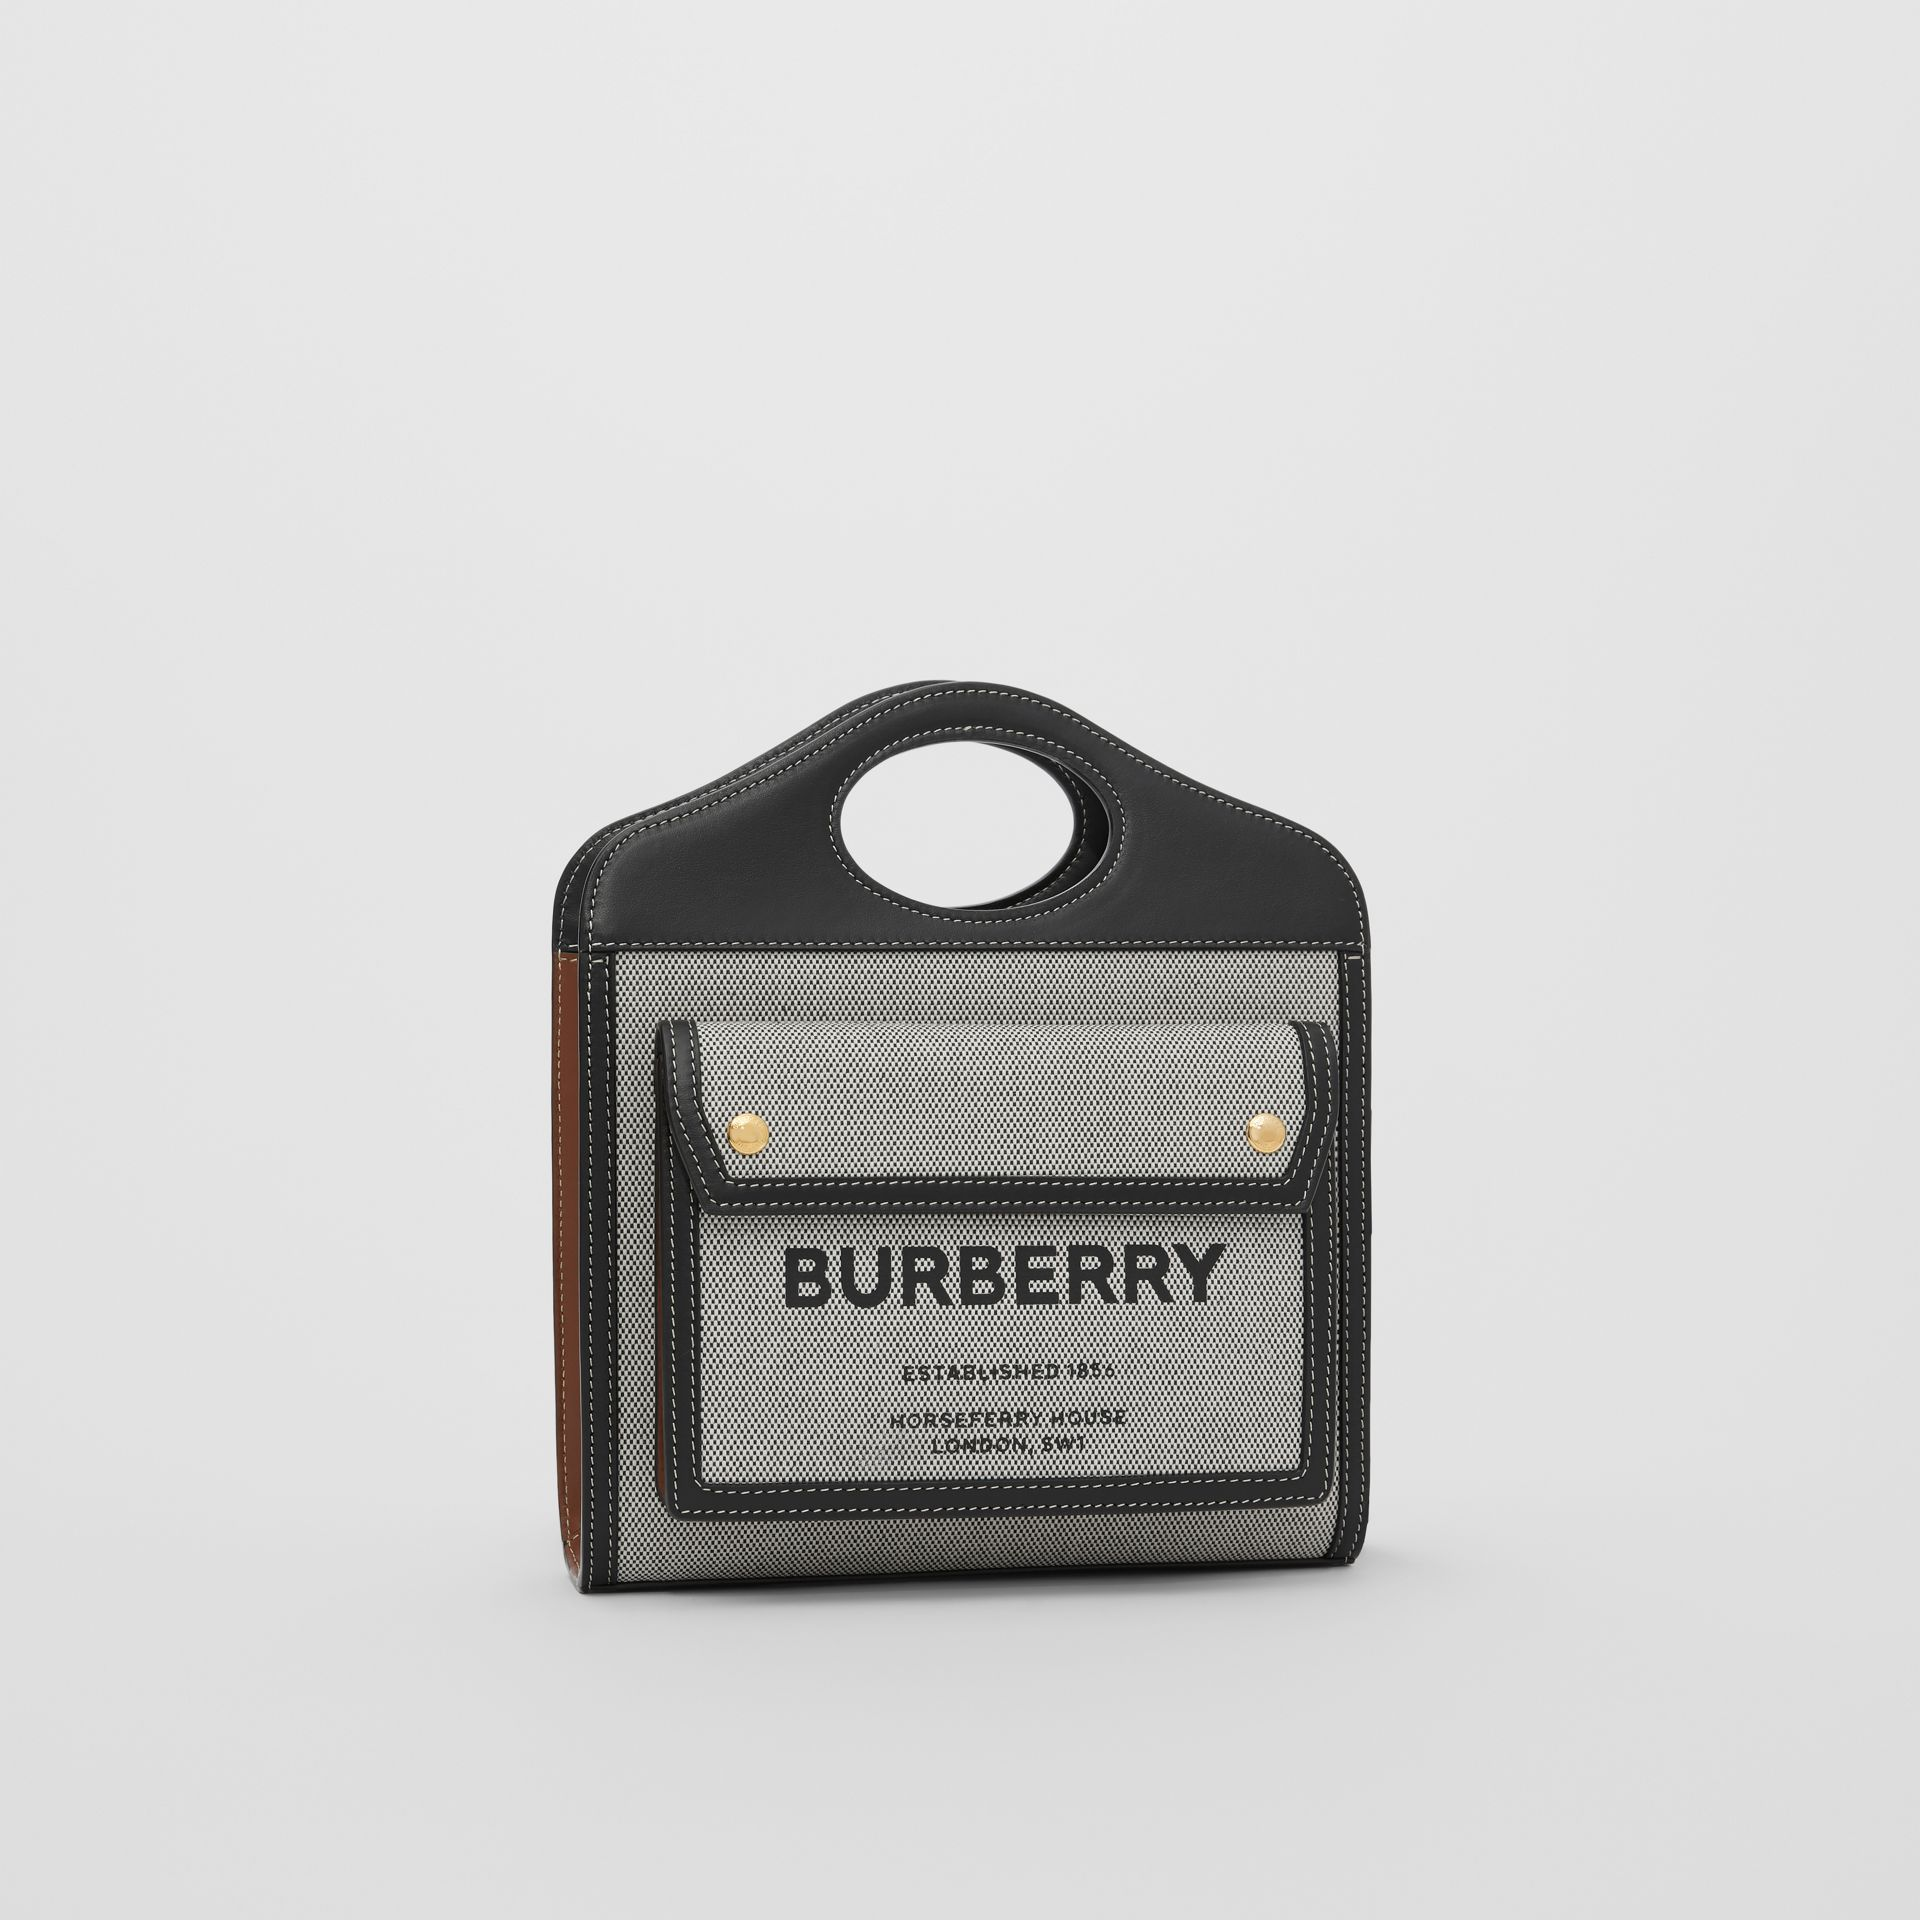 Borsa Pocket mini tricolore in tela e pelle (Nero/marroncino) - Donna | Burberry - immagine della galleria 6